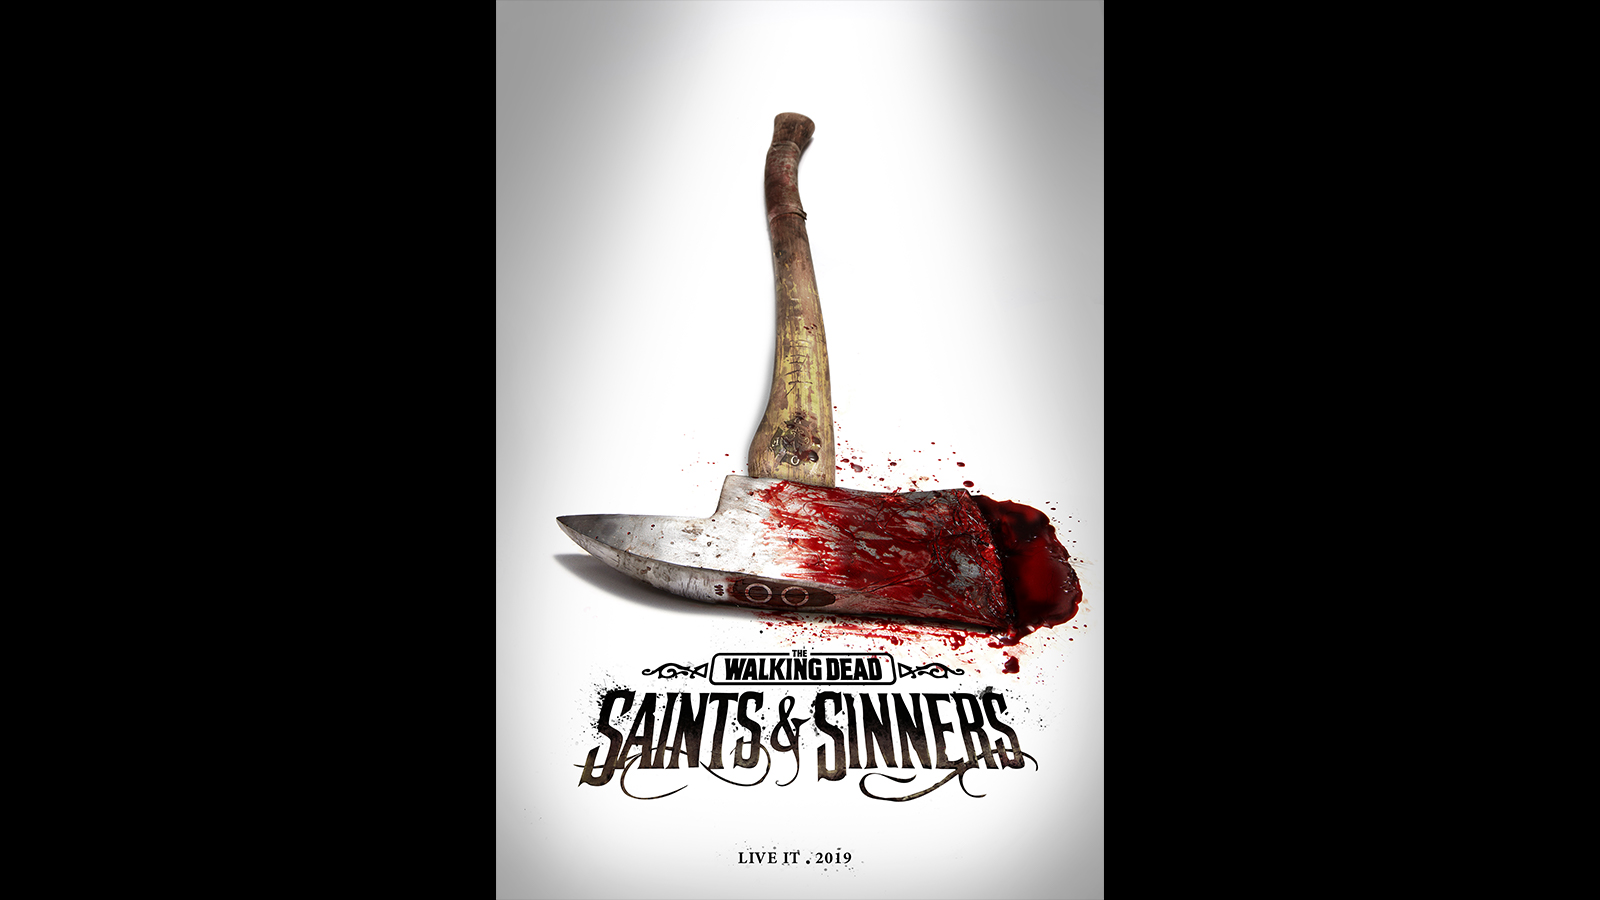 A New VR Game Called The Walking Dead: Saints & Sinners Is On The Way